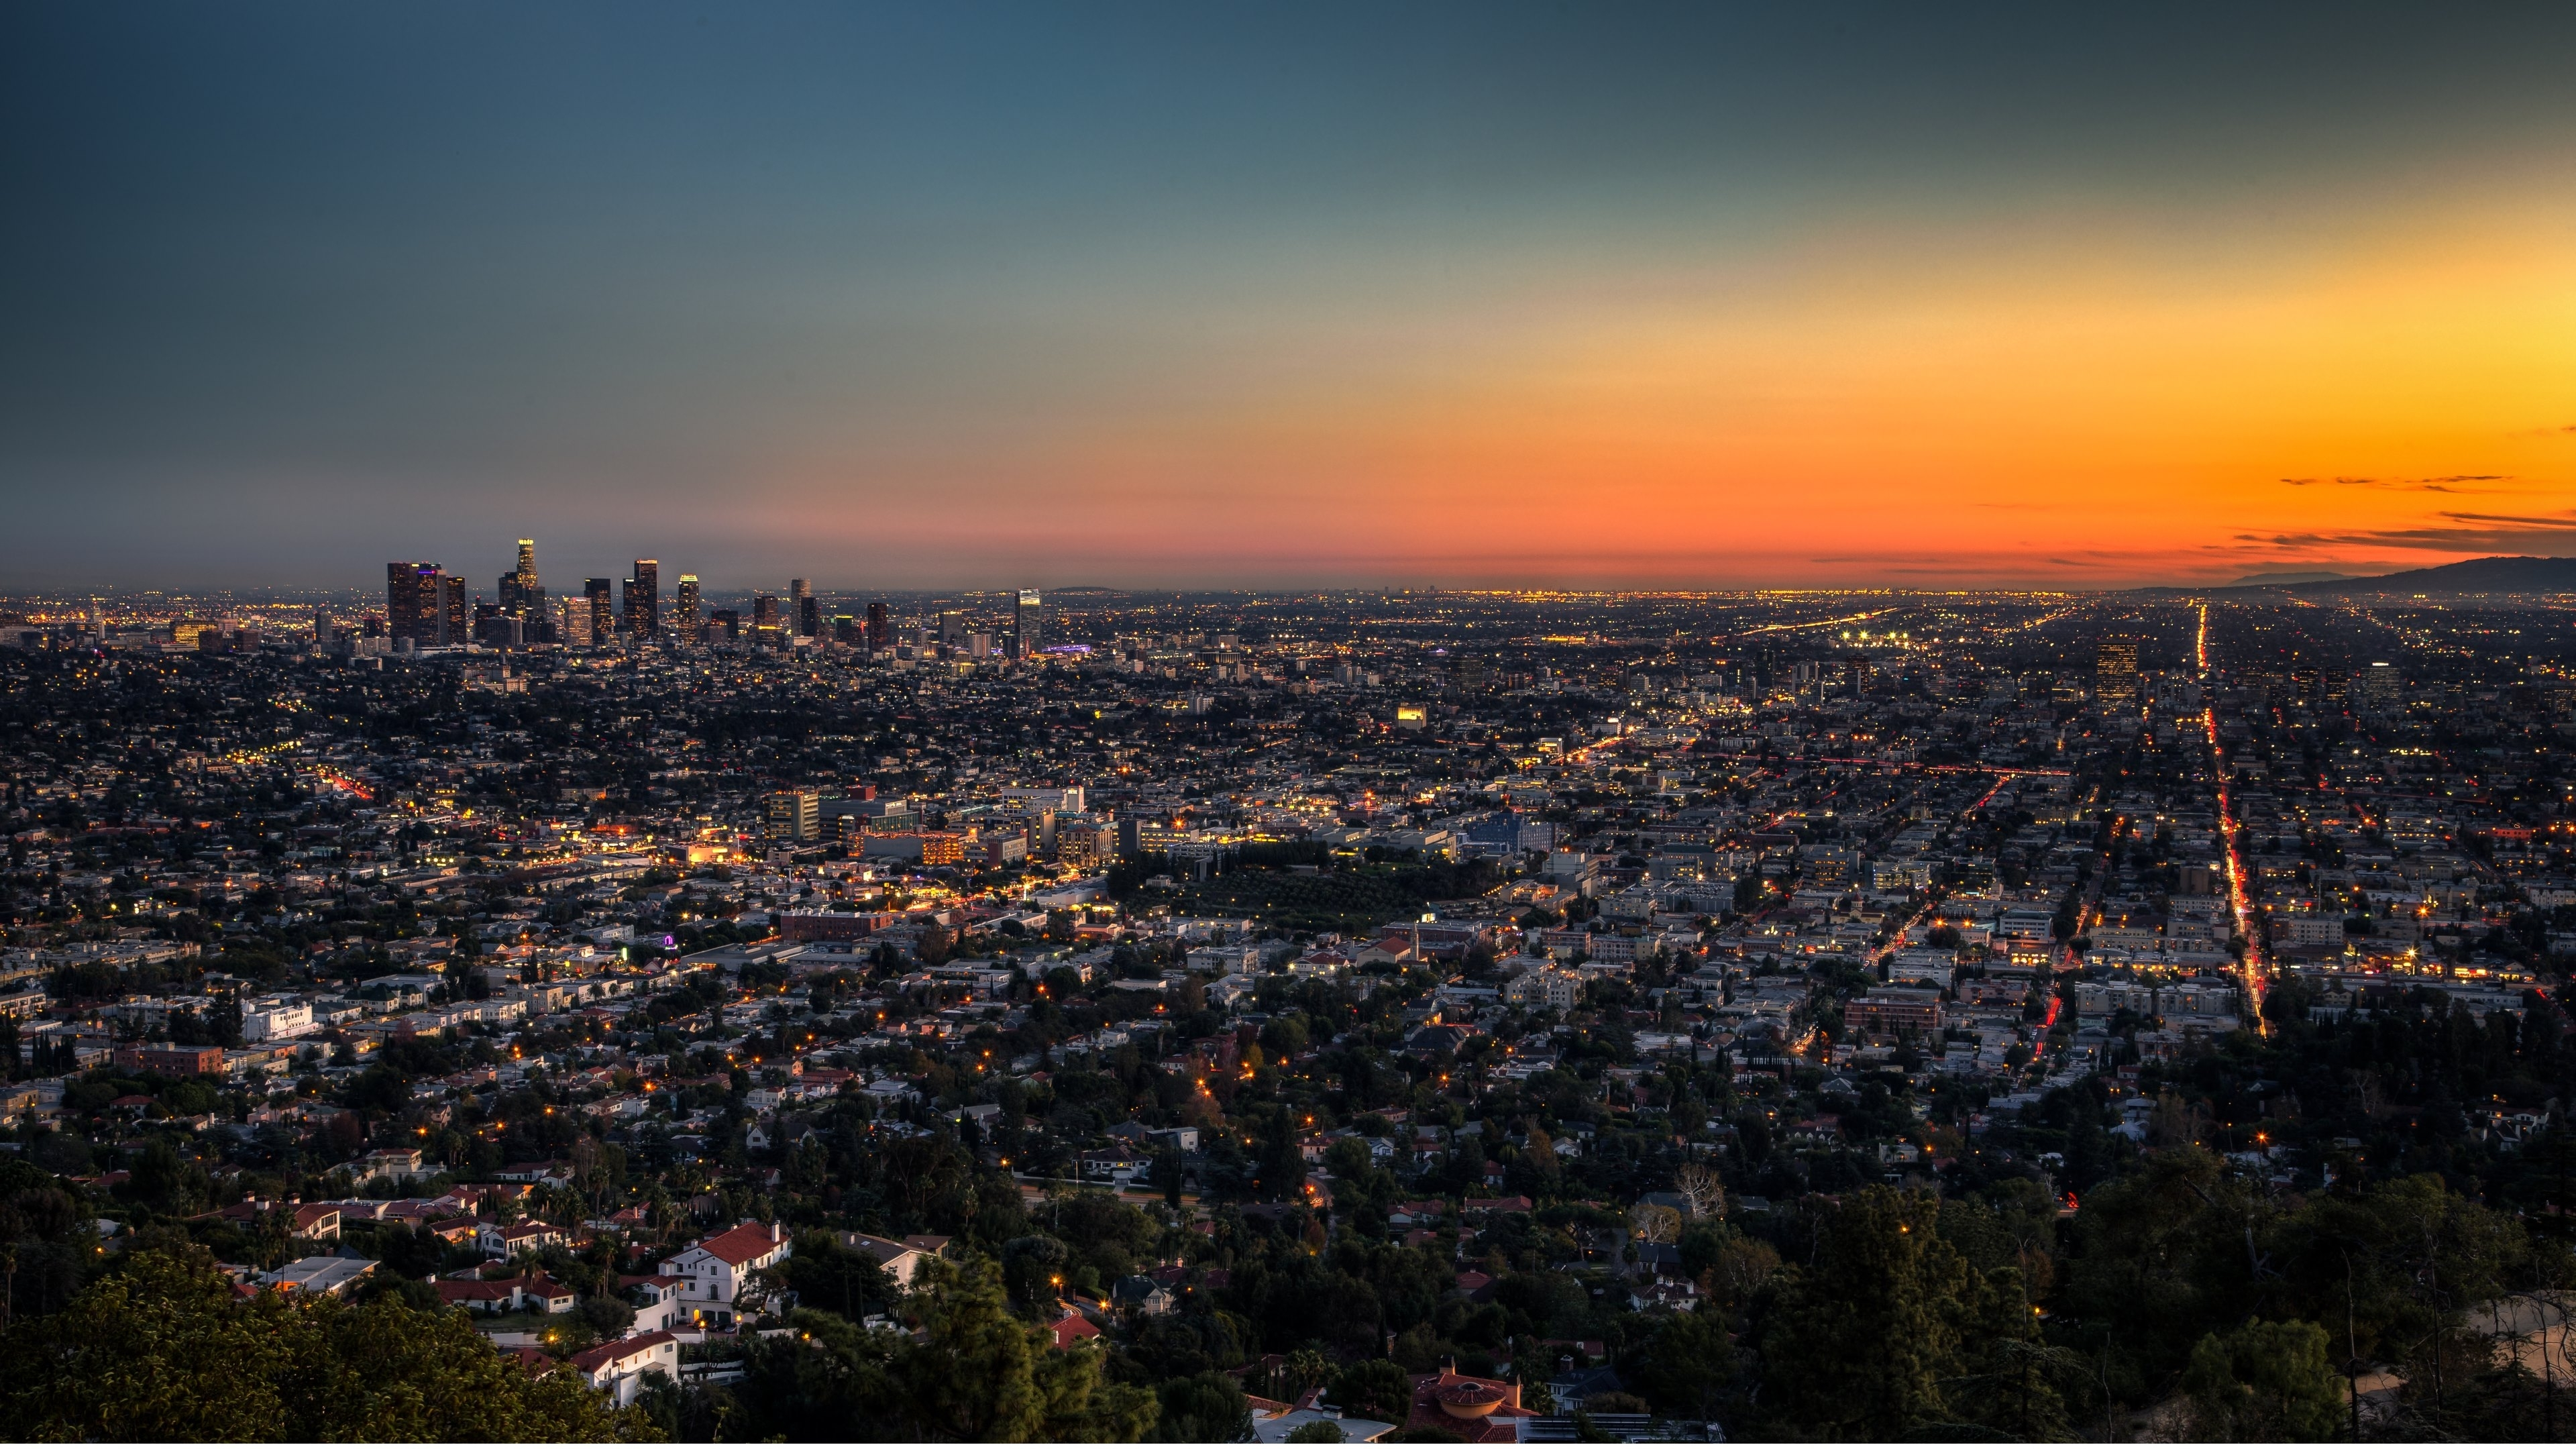 42 los angeles wallpapers, hd creative los angeles pics, full hd